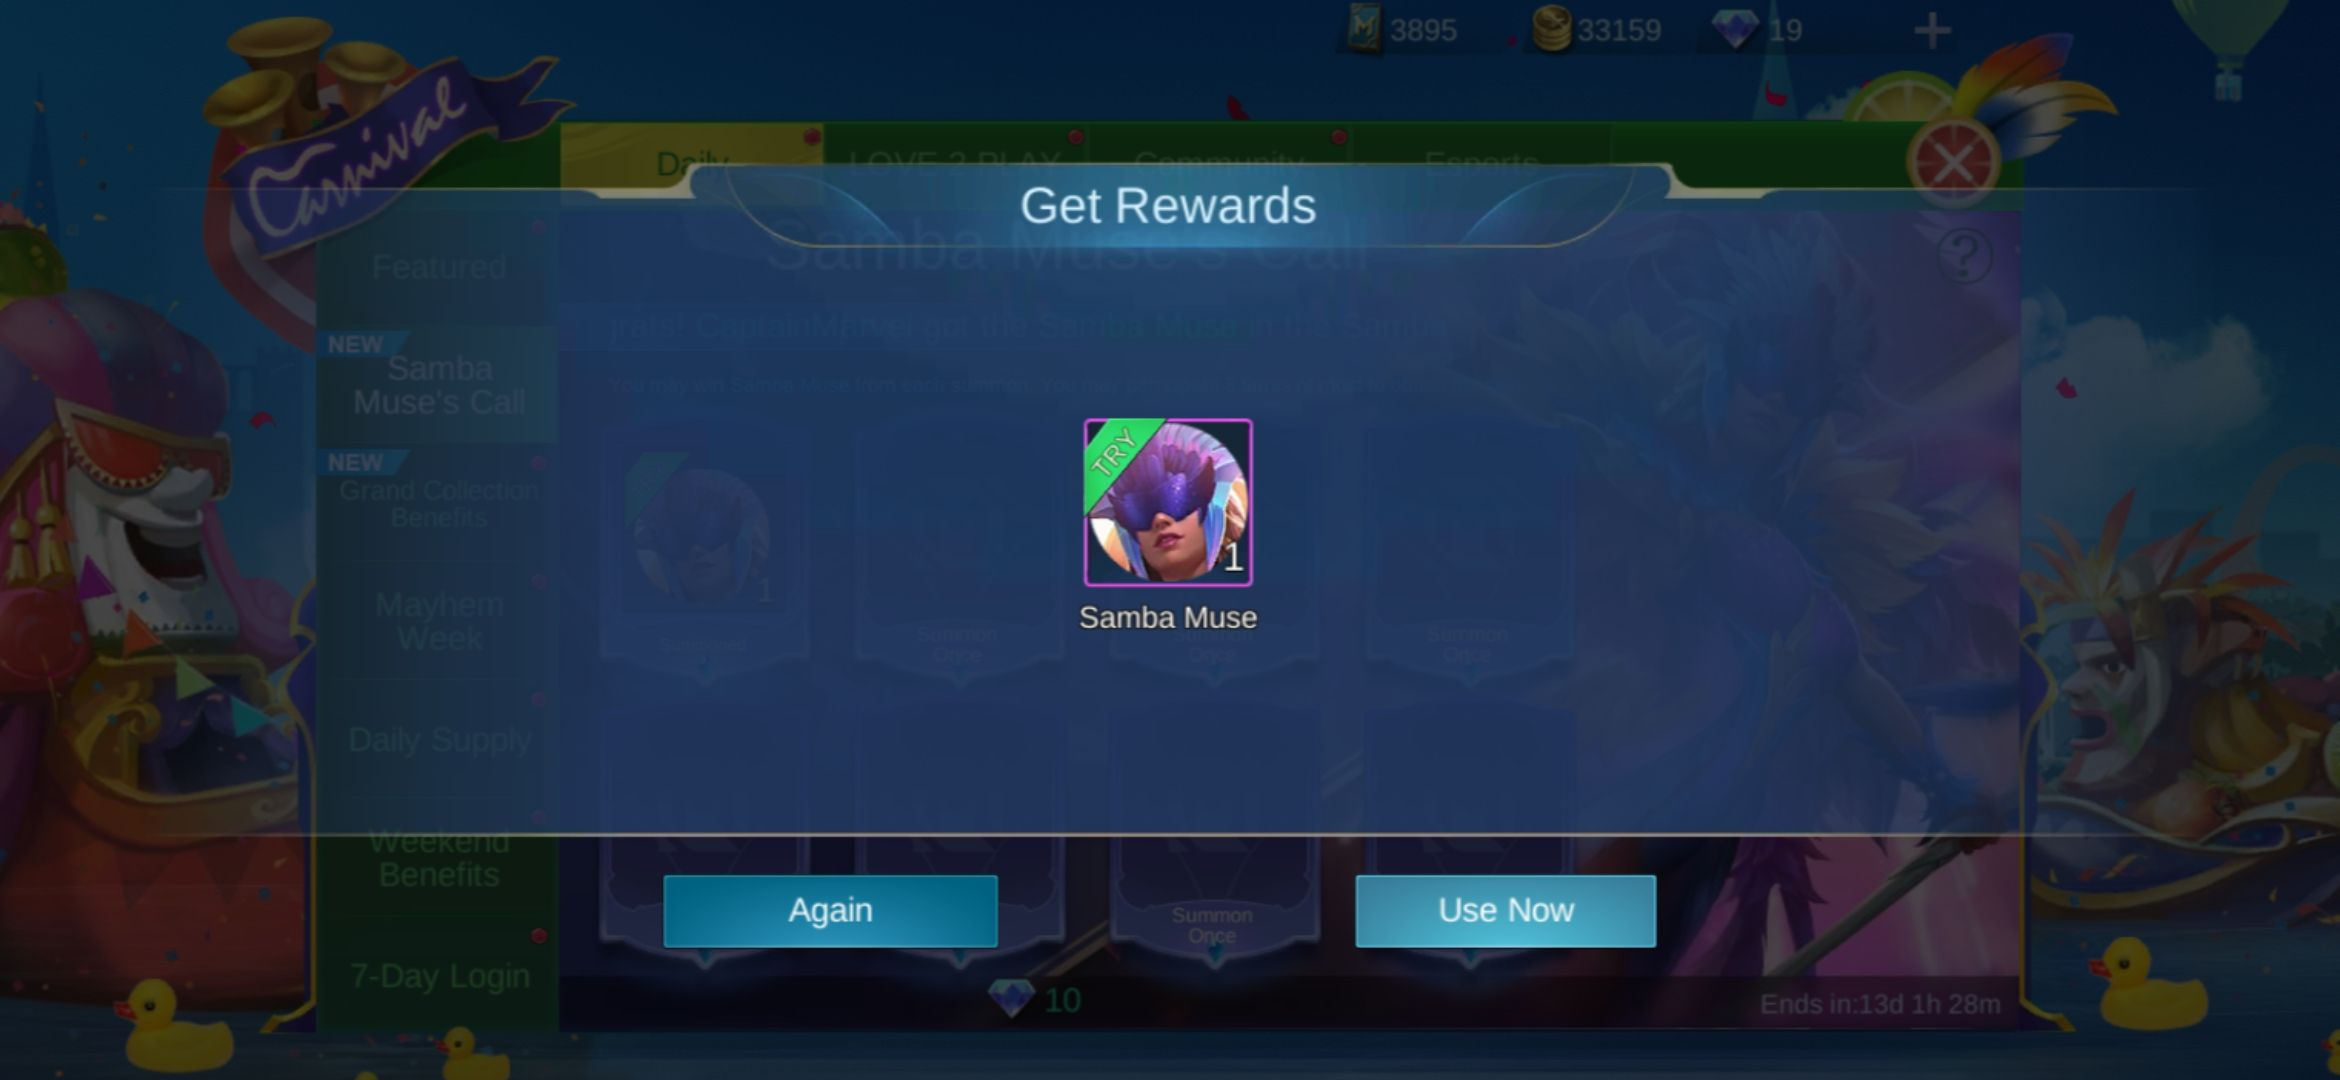 Obtain trial cards, skin fragments and more in the Samba Muse Draw Event in Mobile Legends.